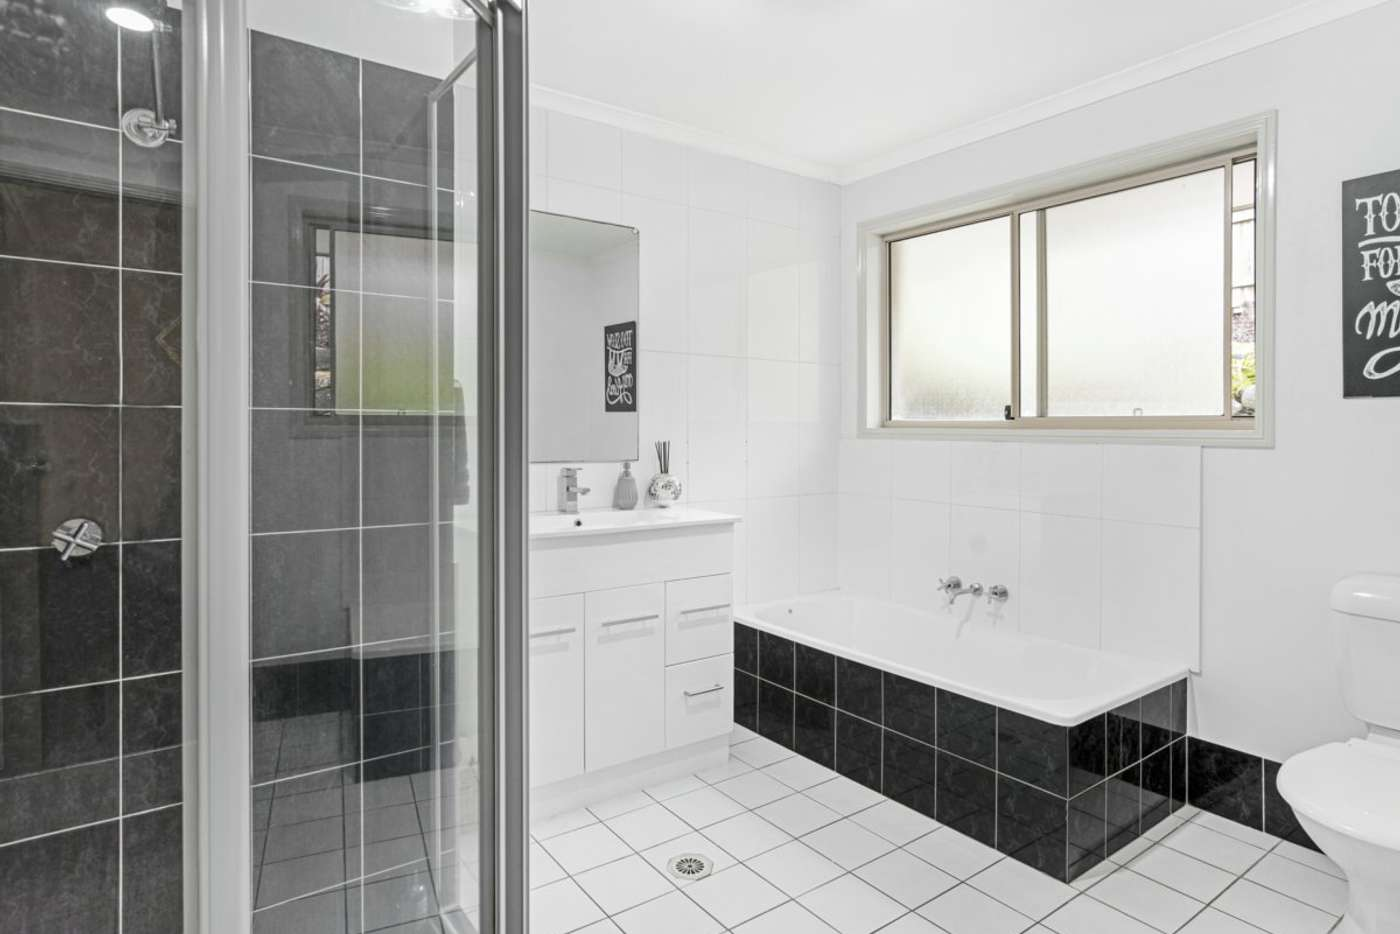 Sixth view of Homely house listing, 23 Virgil Court, Worongary QLD 4213